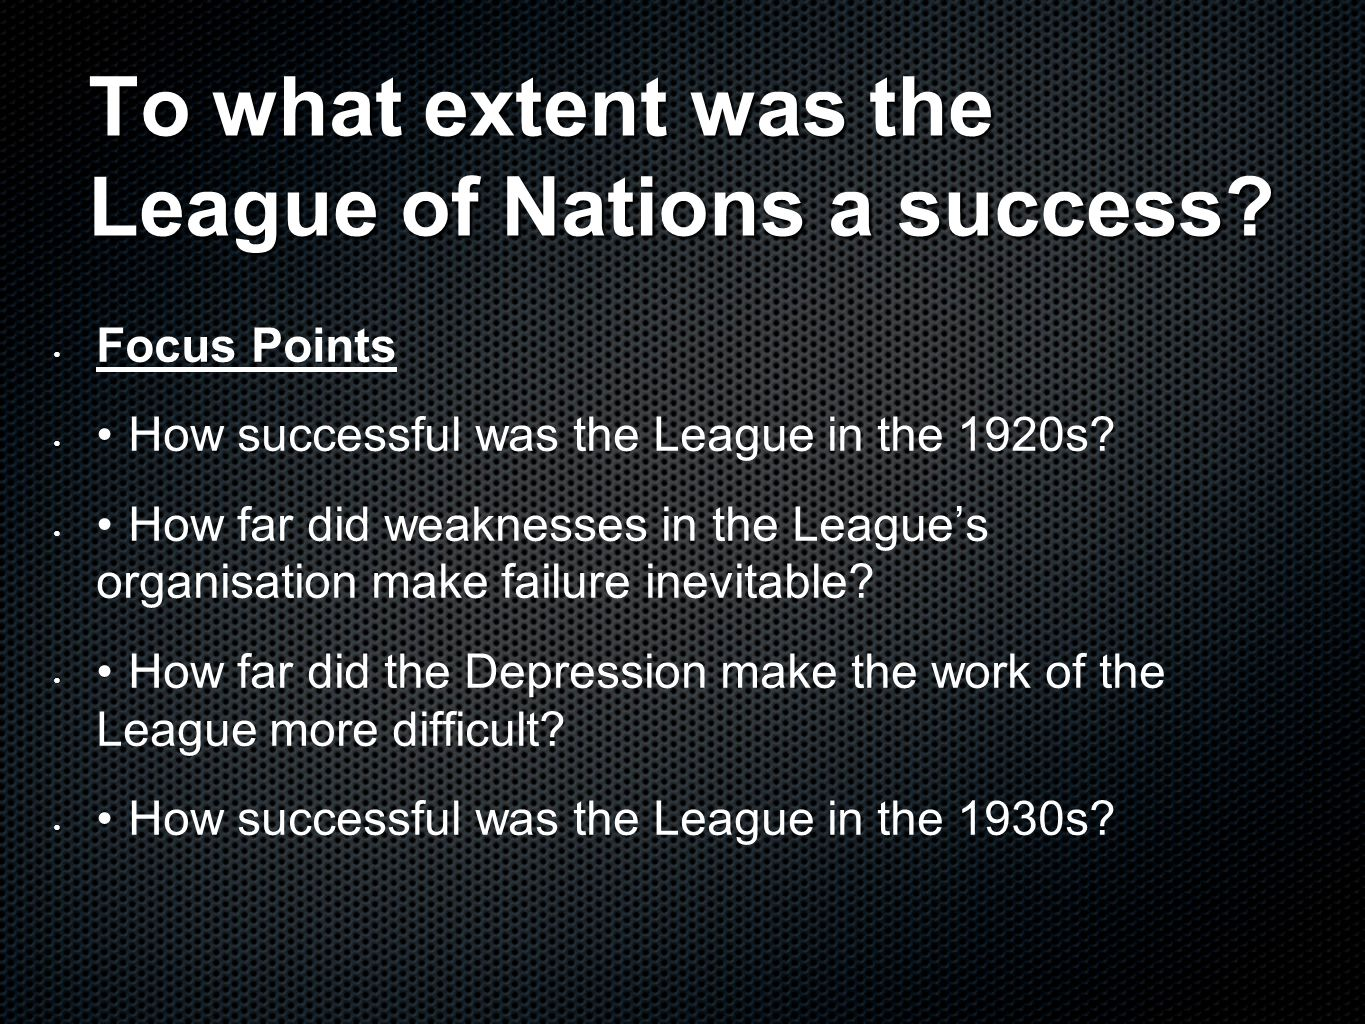 To what extent was the League of Nations a success